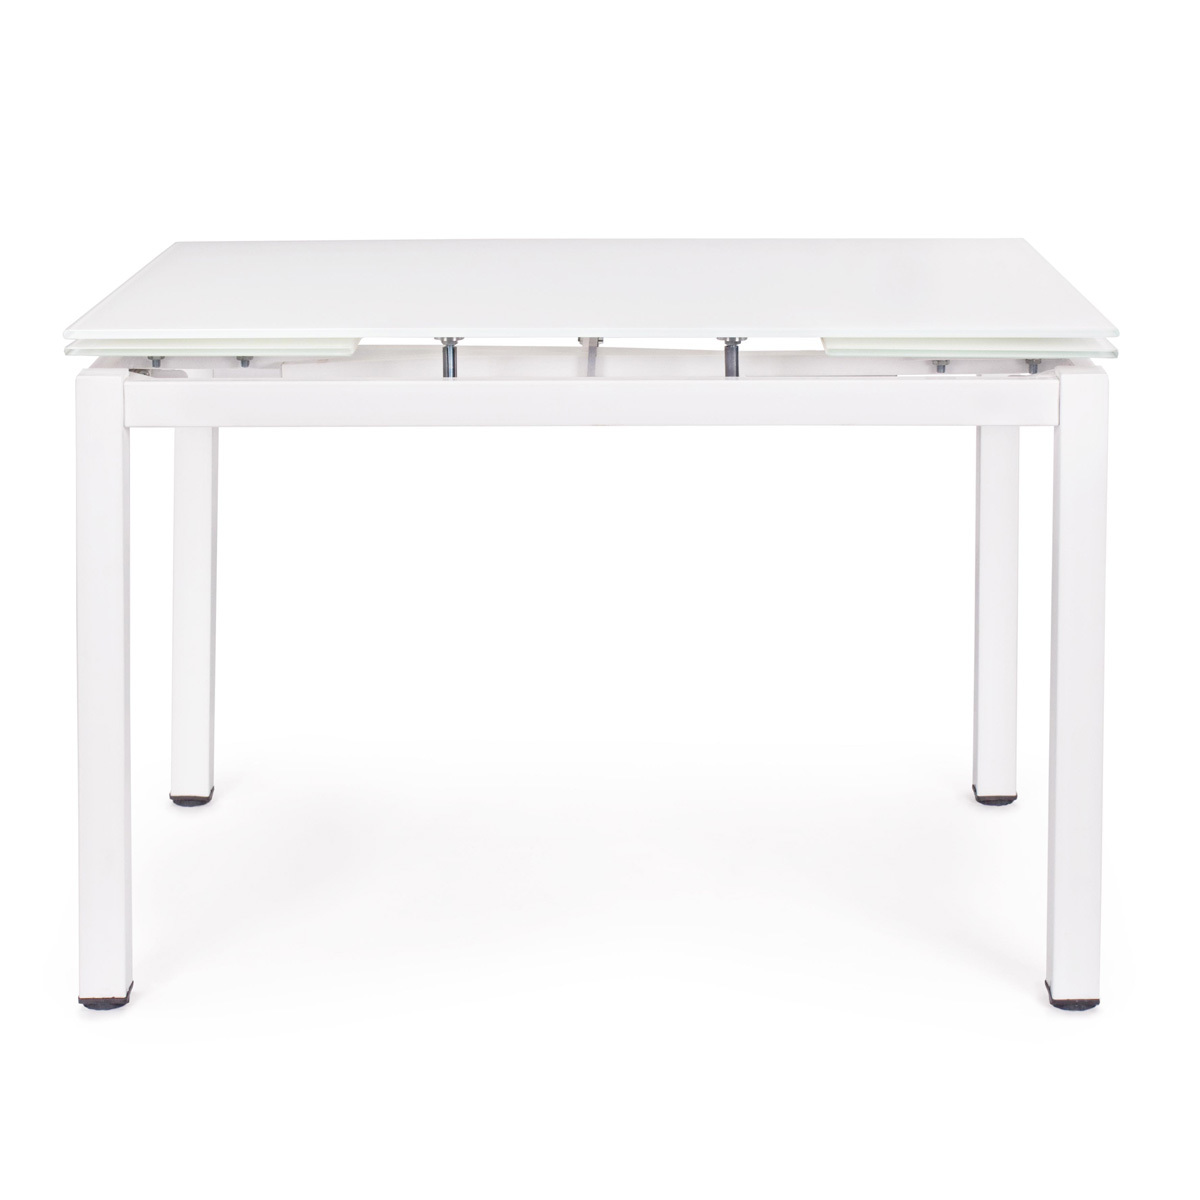 Photos 3: Bizzotto Extendible table l. 110 x 74 0731173